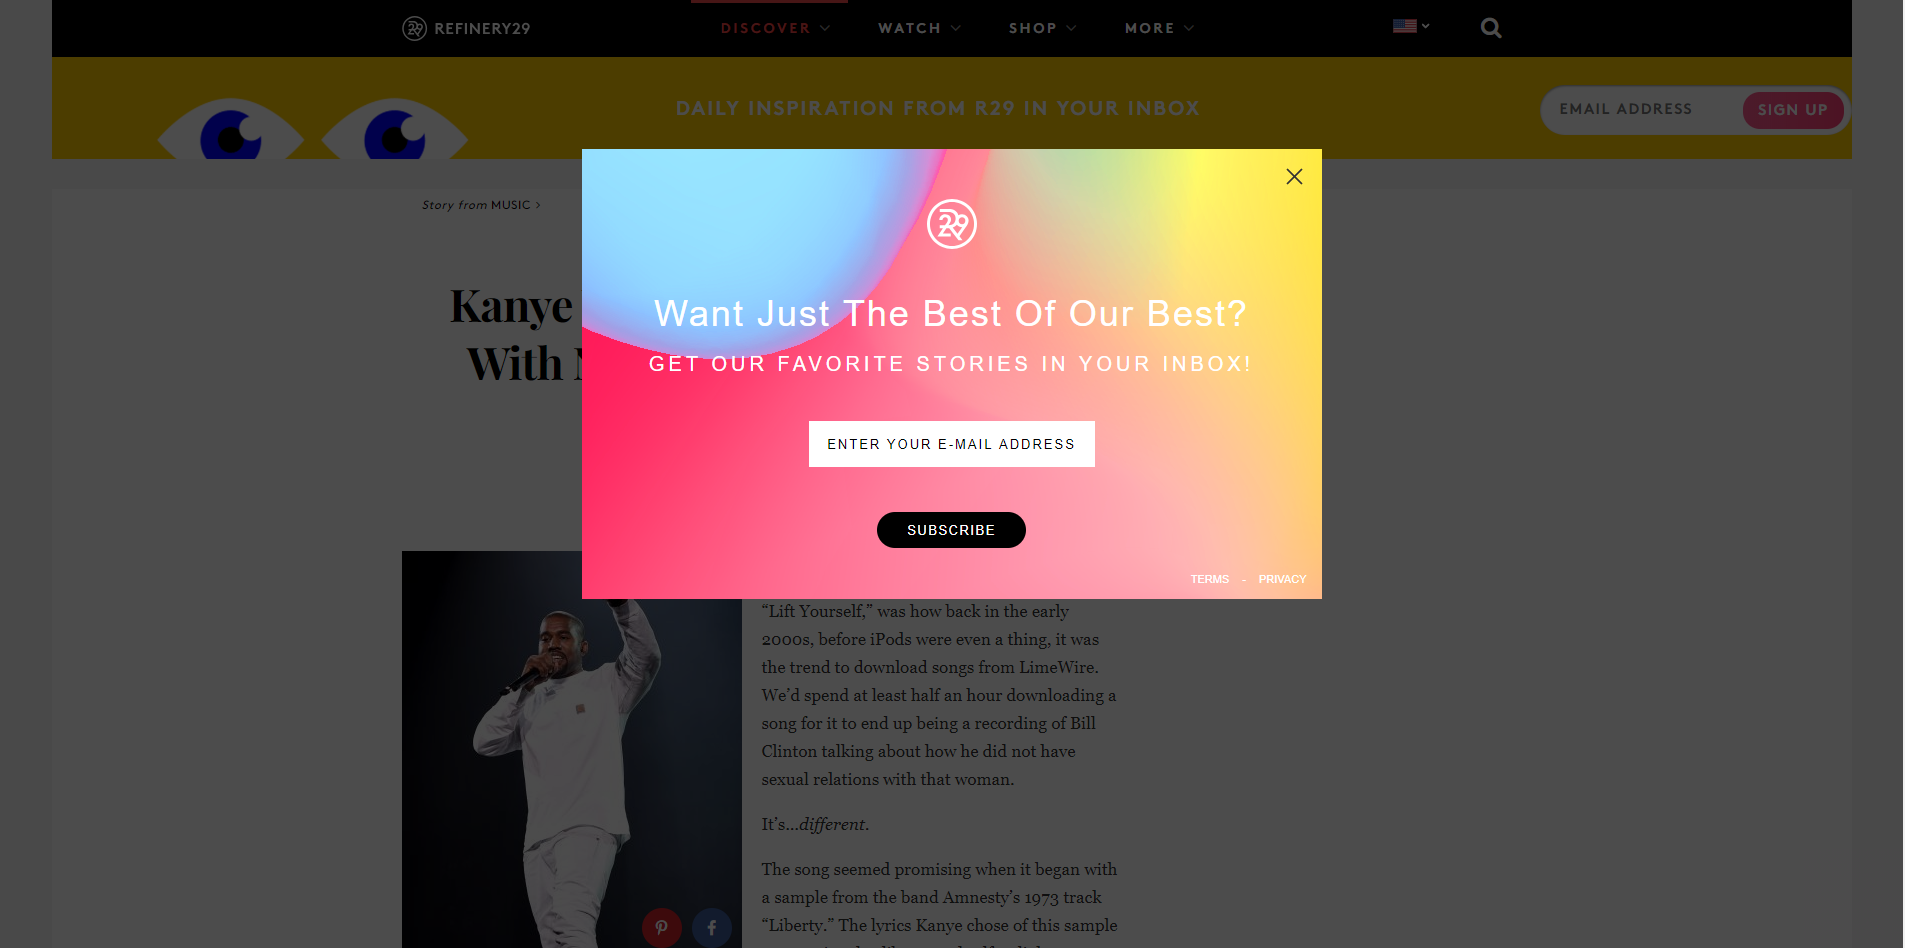 A popup on refinery29 asking visitors if they want to receive the best from their best